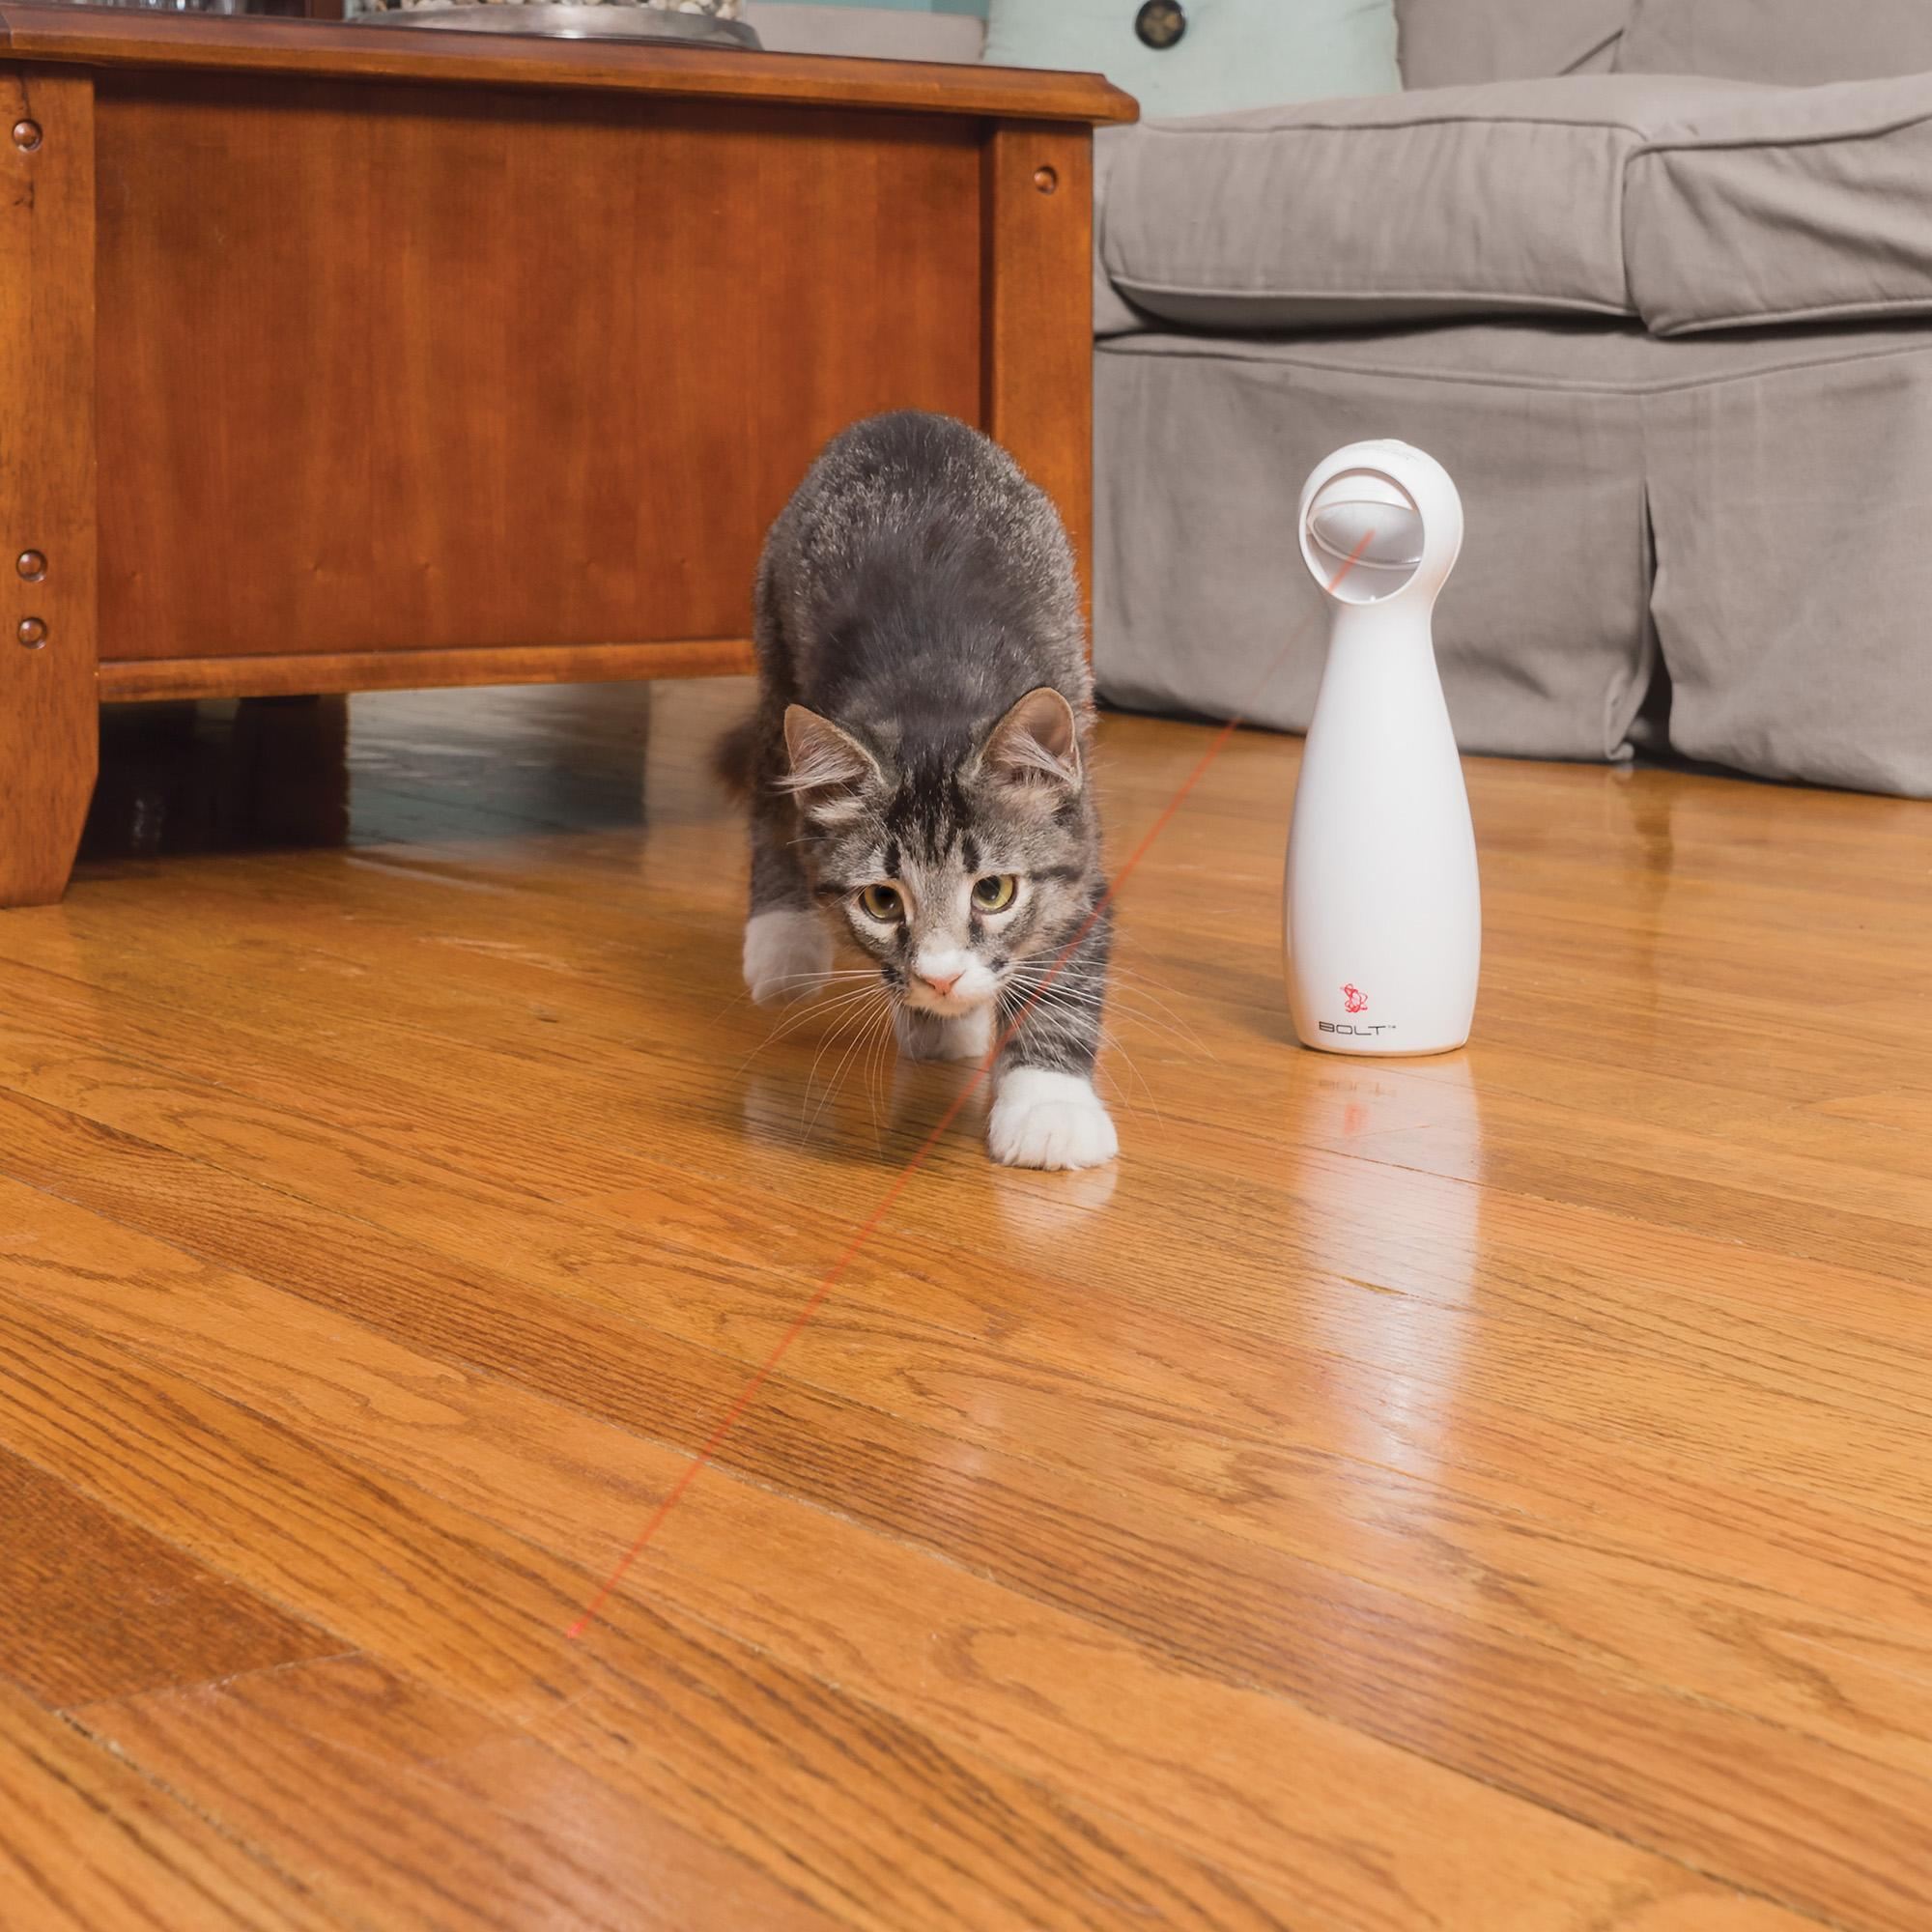 Fibo Automatic Laser Cat Toy - Faciipet